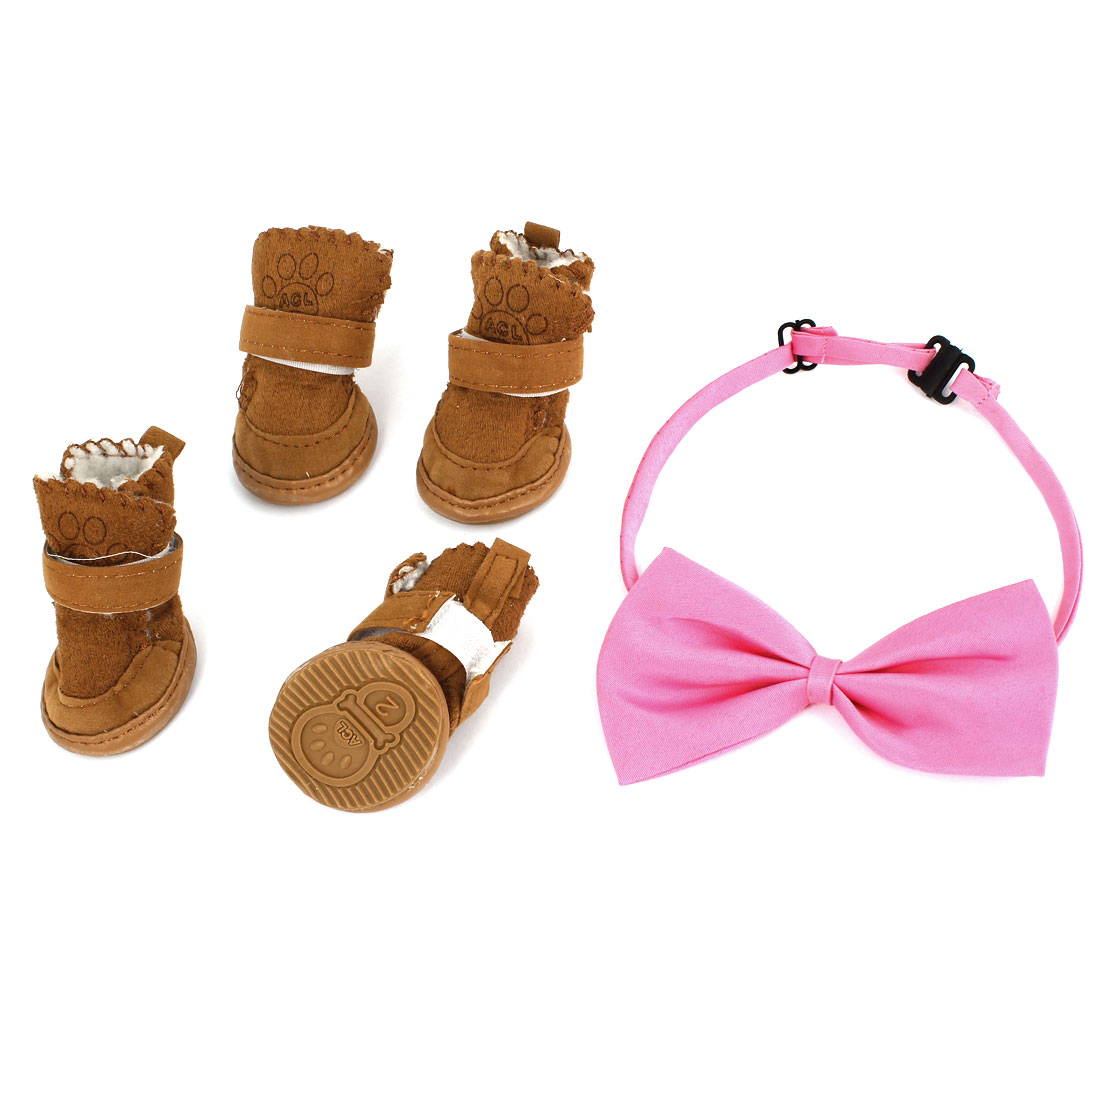 2 Pair Hook Loop Closure Pet Dog Shoes Boots Booties Brown XS + Pink Bowtie Collar